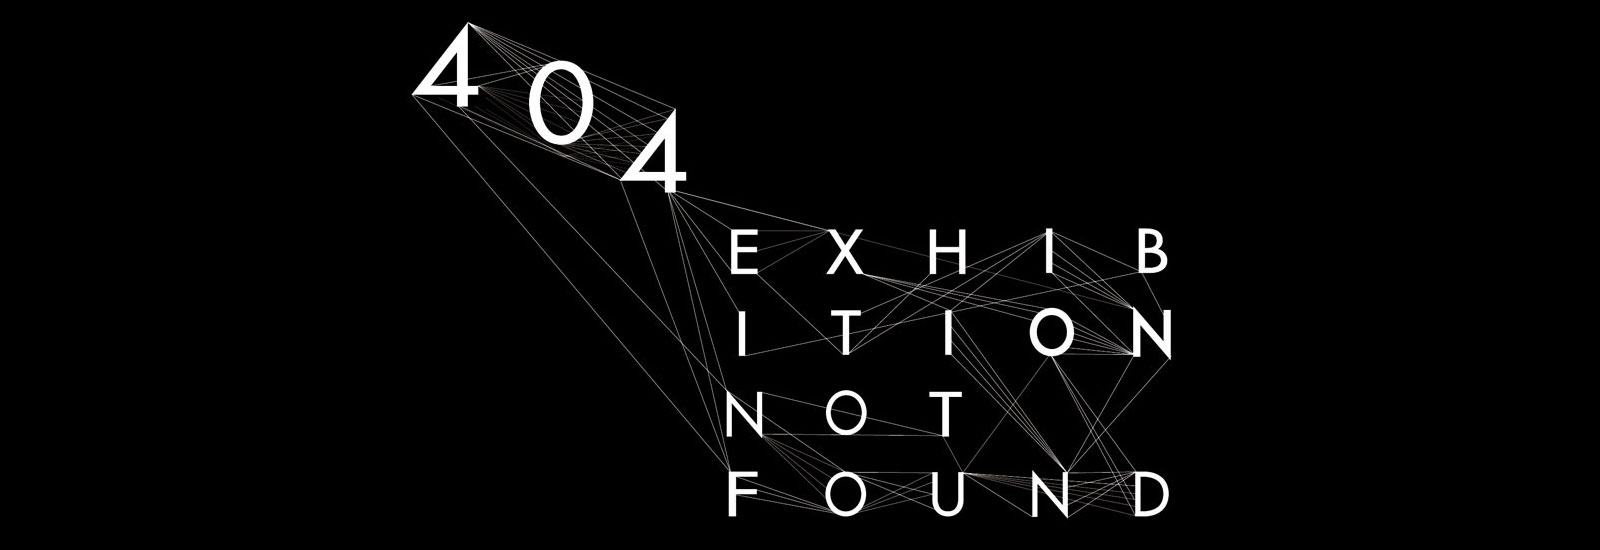 BTK – Art & Design | »404 EXHIBITION NOT FOUND«